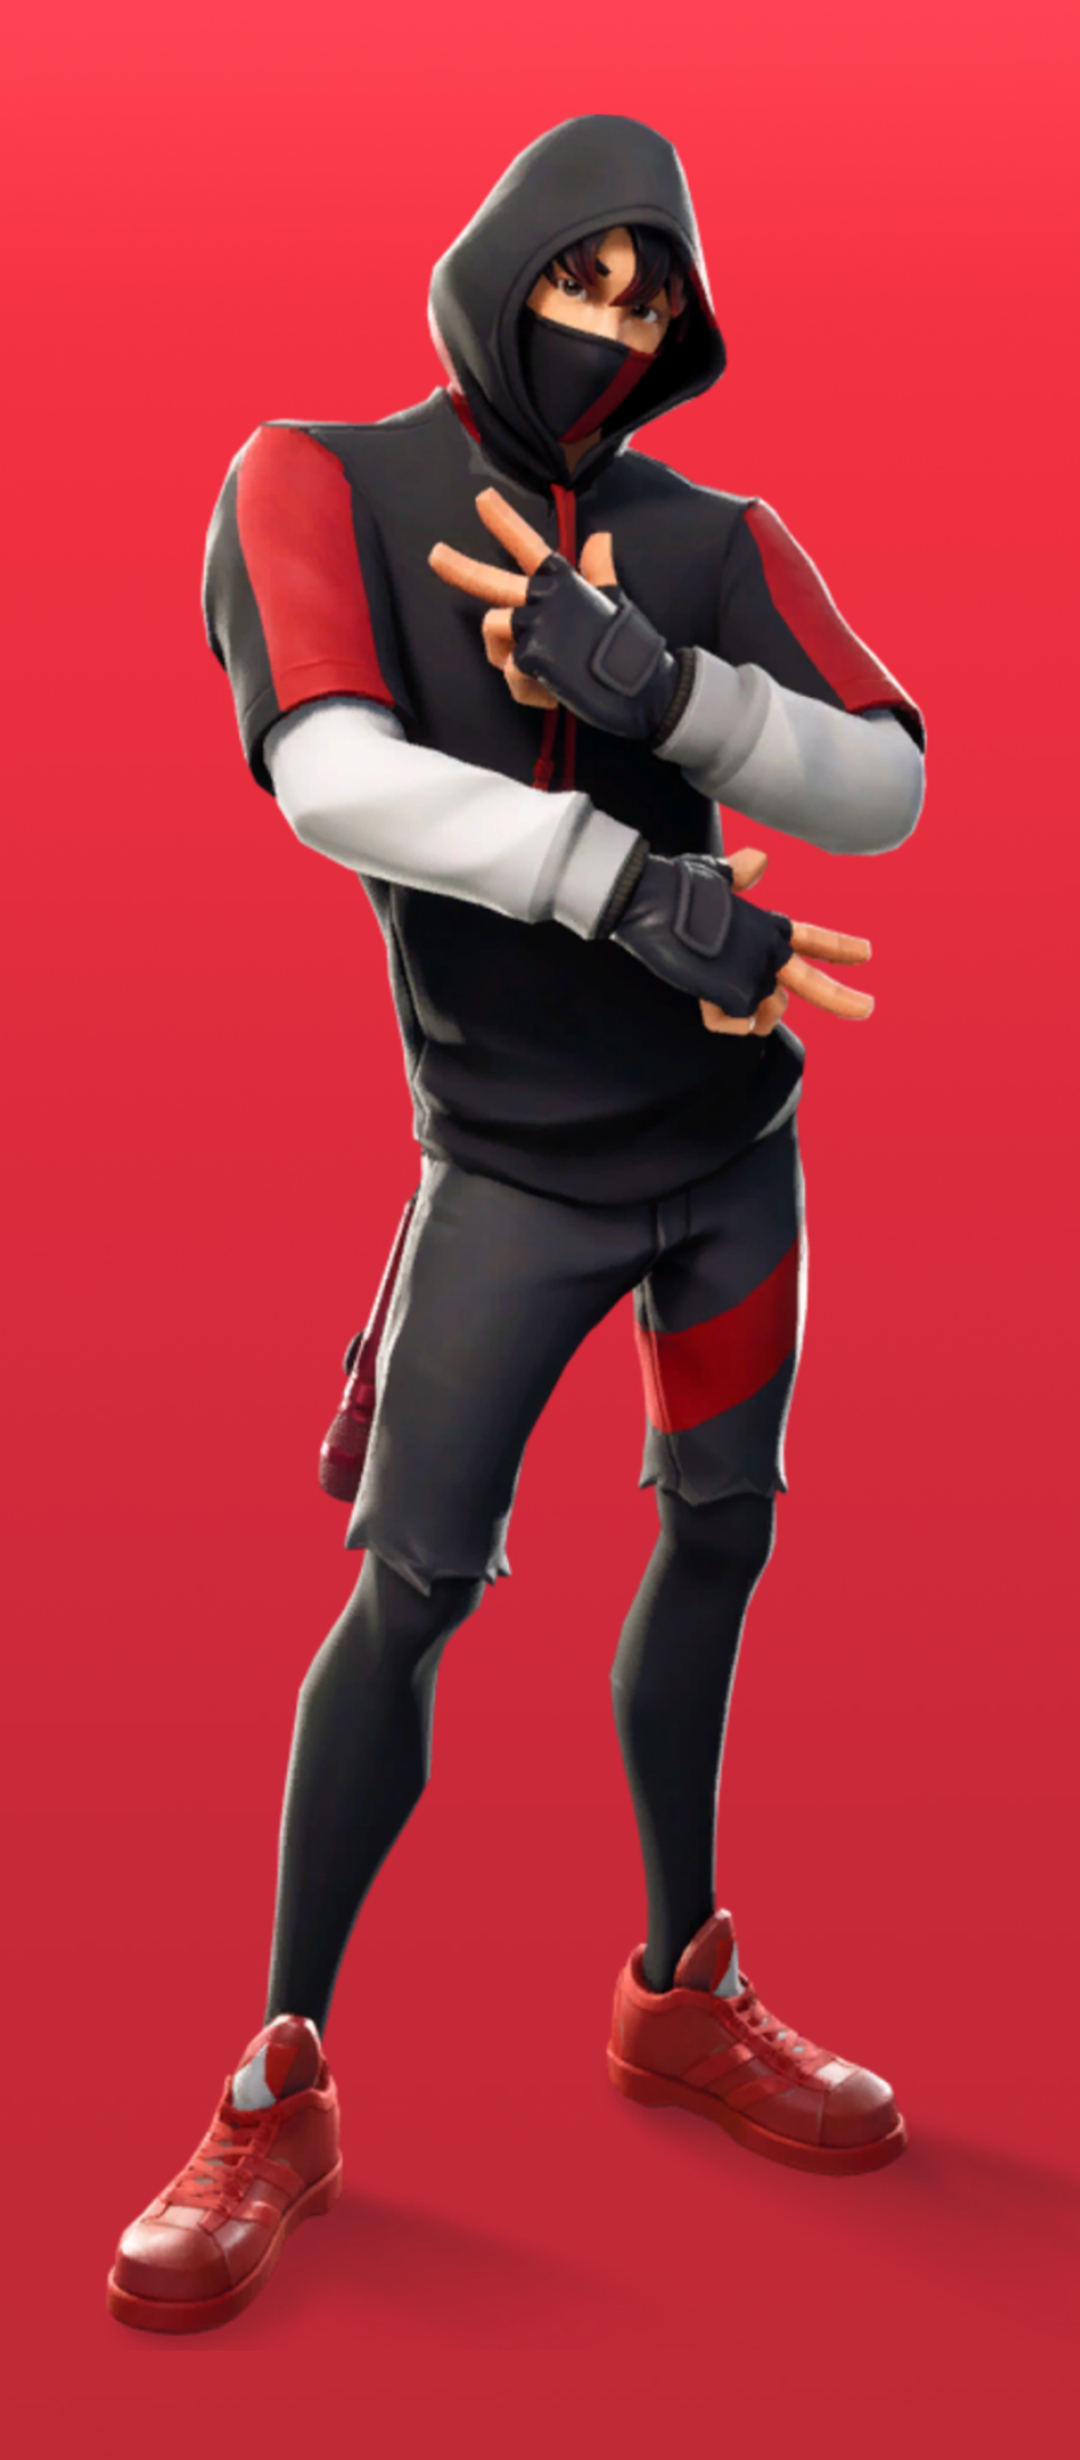 1080x2460 Ikonik Fortnite 4k 1080x2460 Resolution Wallpaper Hd Games 4k Wallpapers Images Photos And Background